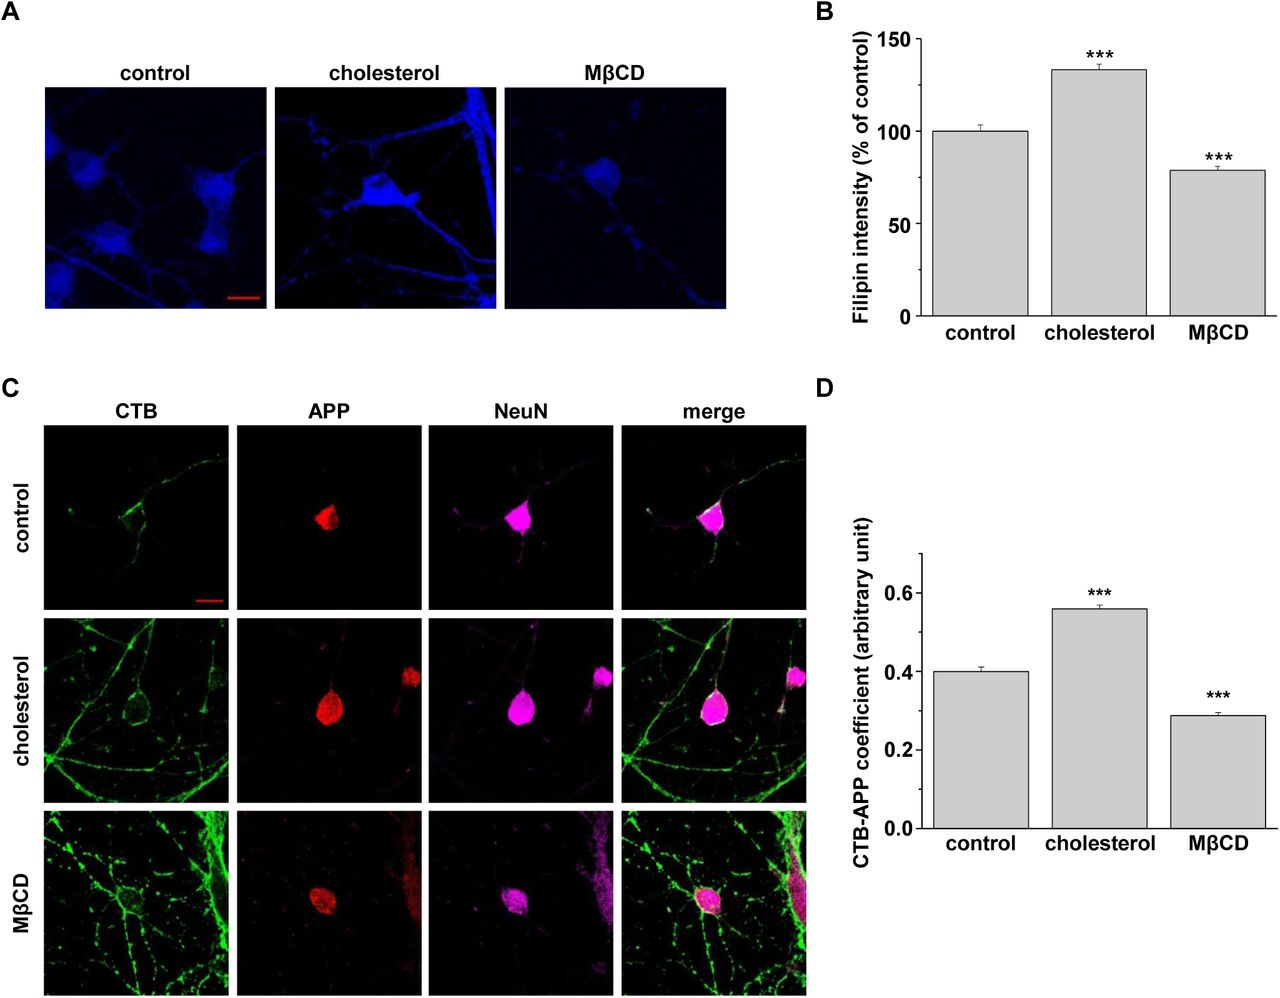 Cellular cholesterol levels determined the localization of endogenous APP in lipid raft microdomains from rat primary hippocampal neurons. A. Rat primary hippocampal neurons (DIV21-DIV23) were incubated with either 1.5 mM MβCD-cholesterol or 2 mM MβCD. Then, cells were incubated with filipin to stain free cholesterol levels. Representative confocal image are shown. Data are representative of three independent experiments. Scare bars correspond to 10 μm. B. Filipin fluorescent intensities (n=3). C. Hippocampal neurons were treated with MβCD-cholesterol or MβCD, followed by incubation with APP antibody and cholera toxin B (CTB) at 4°C. After fixing and permeabilization, neurons were incubated with NeuN antibody to detect neurons. Confocal image from four independent experiments is shown. Scare bars correspond to 10 μm. D. Co-efficiency of APP and CTB was analyzed with Image J (n=4). Statistical analysis was performed by one-way ANOVA: ***p